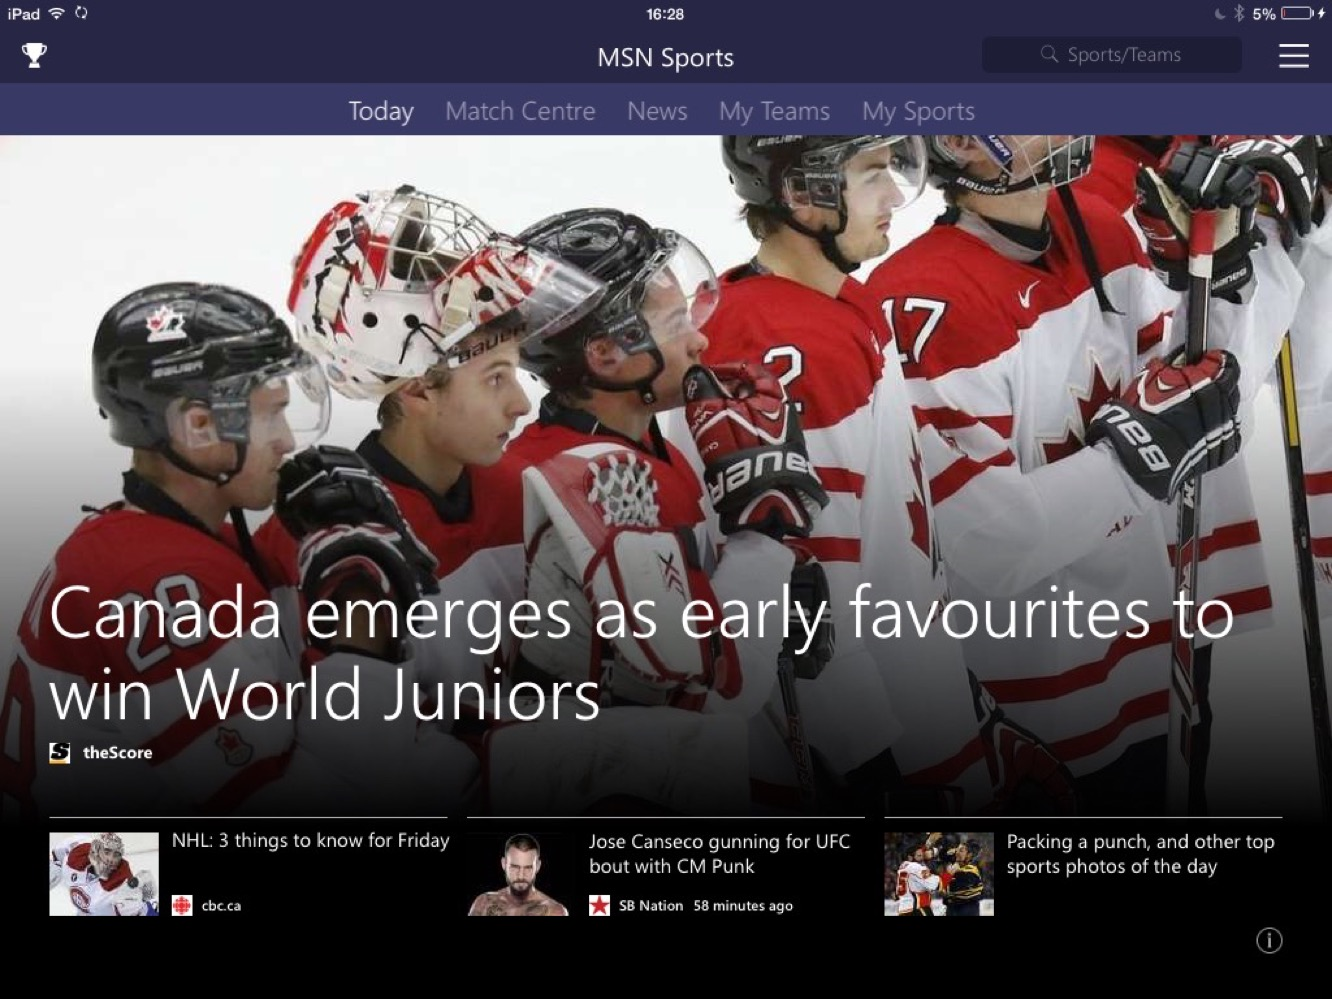 apps msn sports News: Apps of the Week: Microsoft's MSN apps